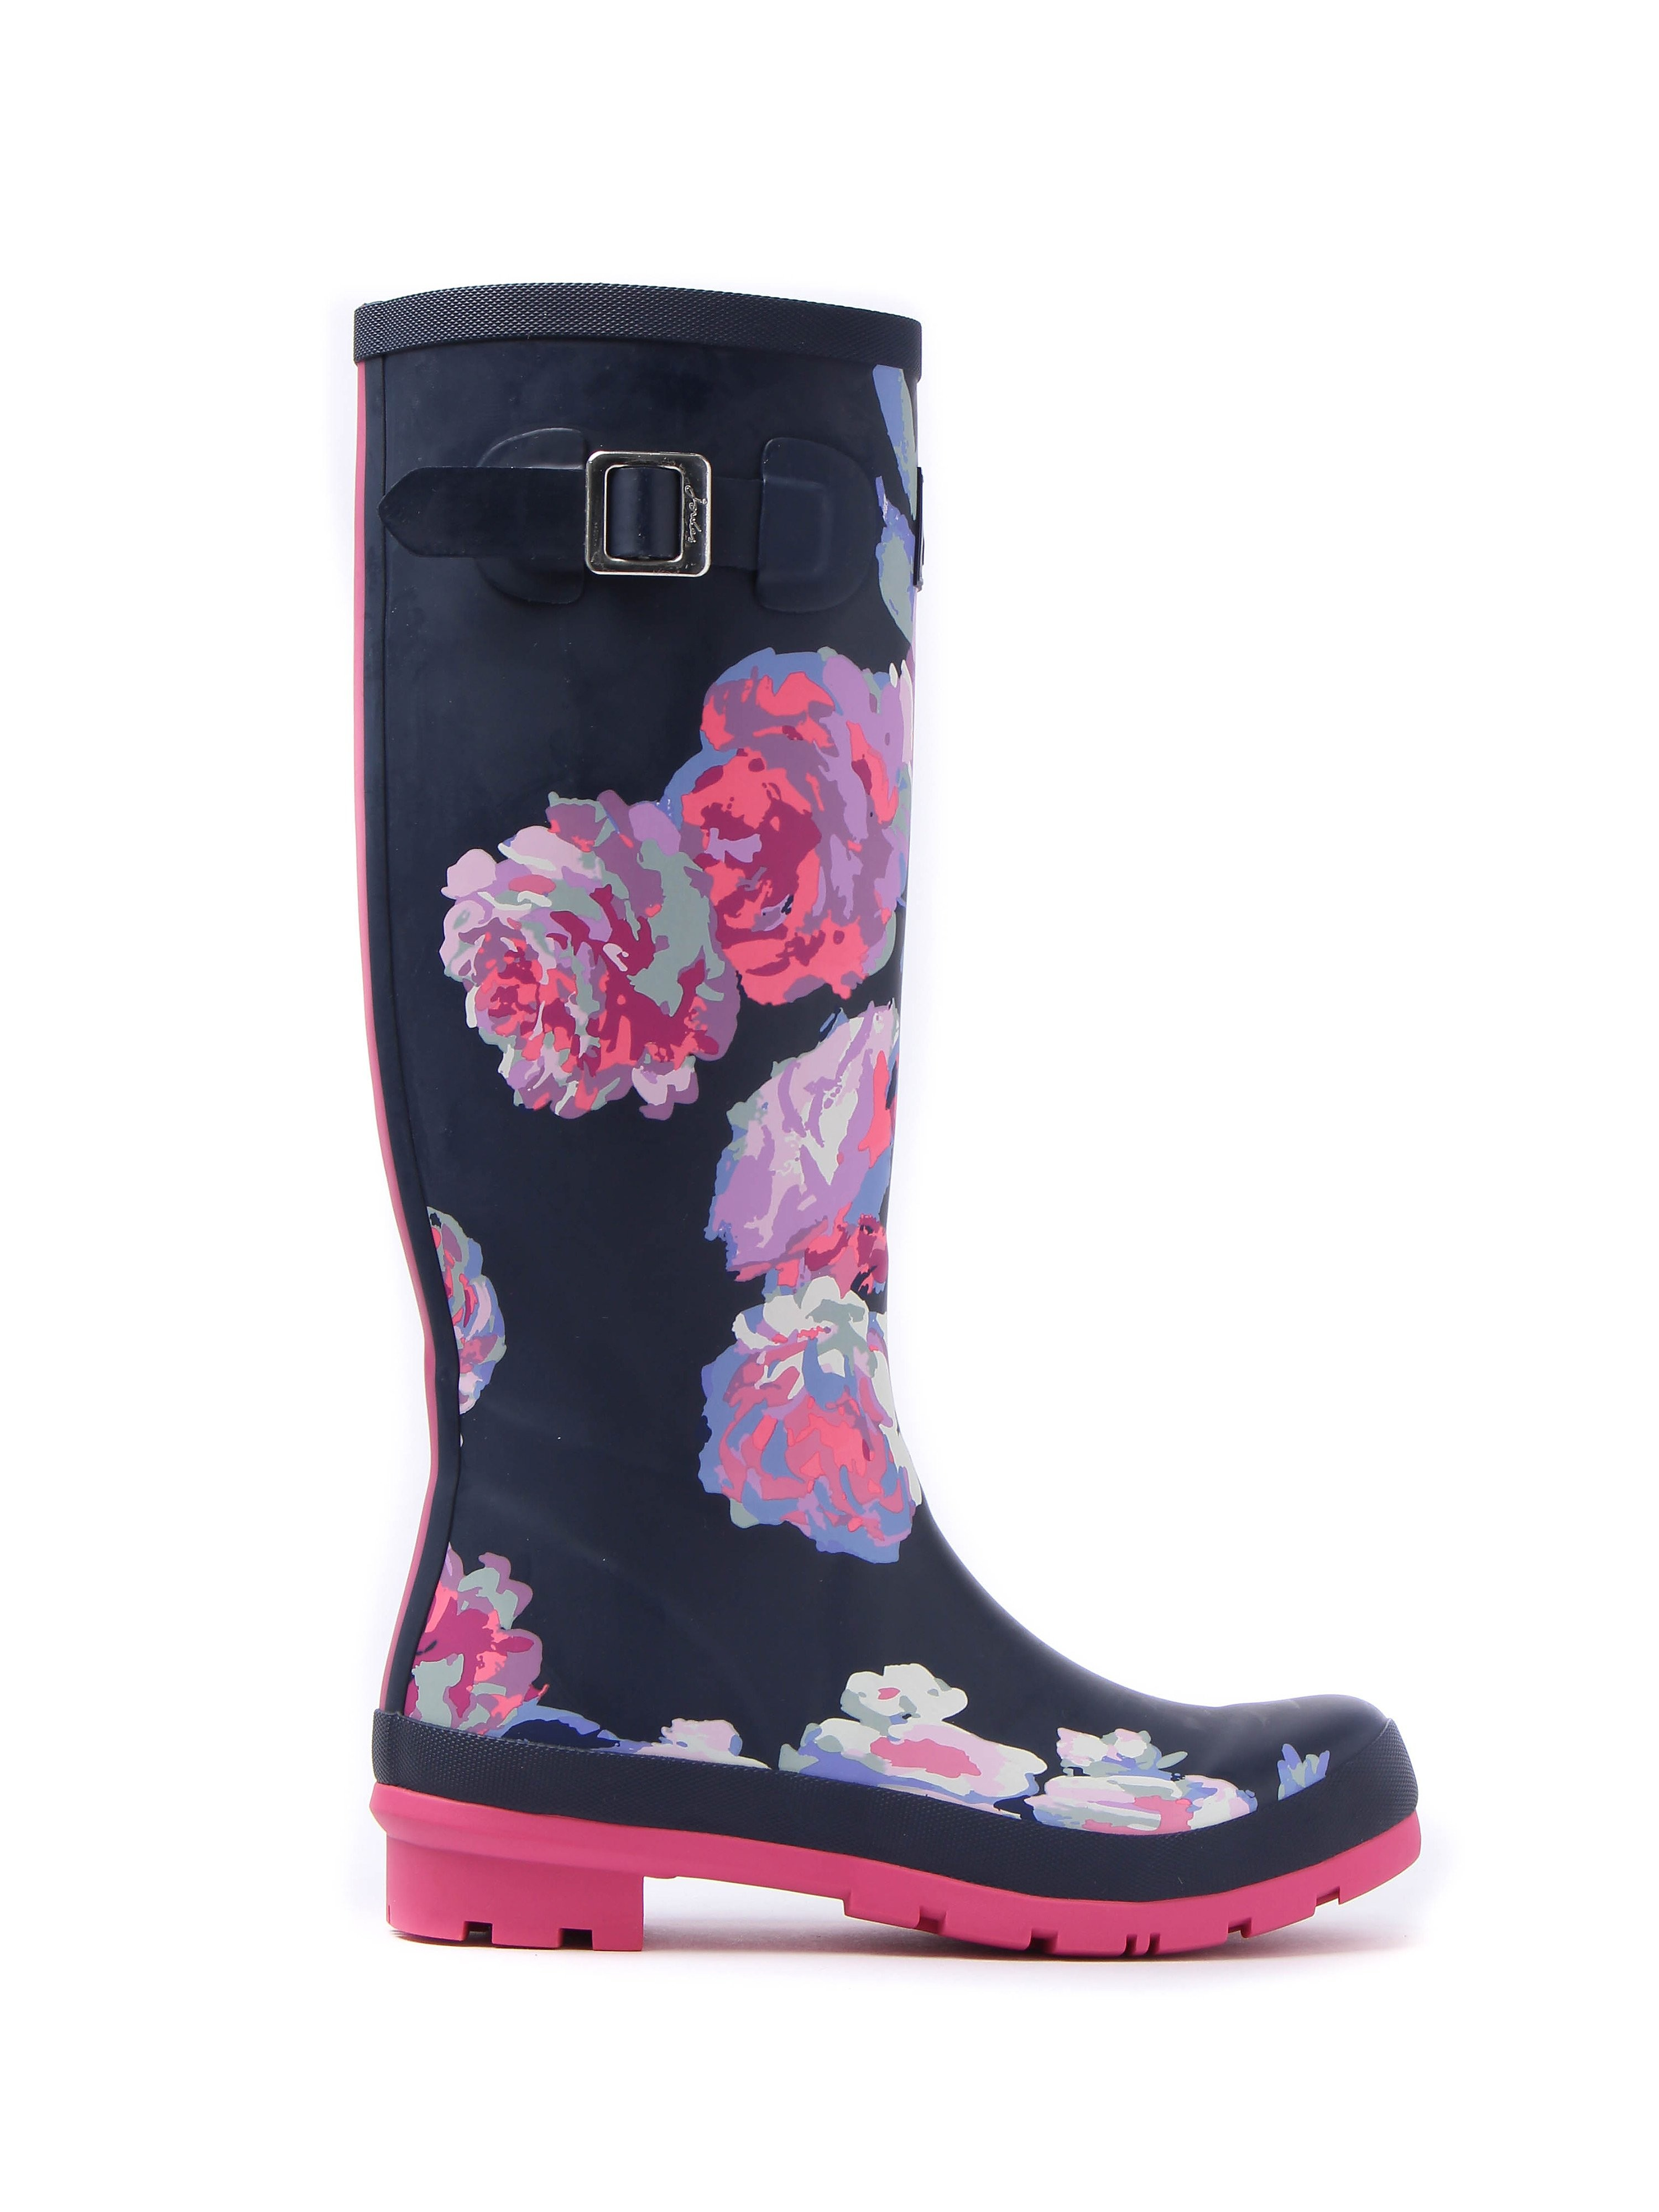 Joules Women's Print French Beau Bloom Full Height Rubber Wellington Boots - Navy Beau Bloom